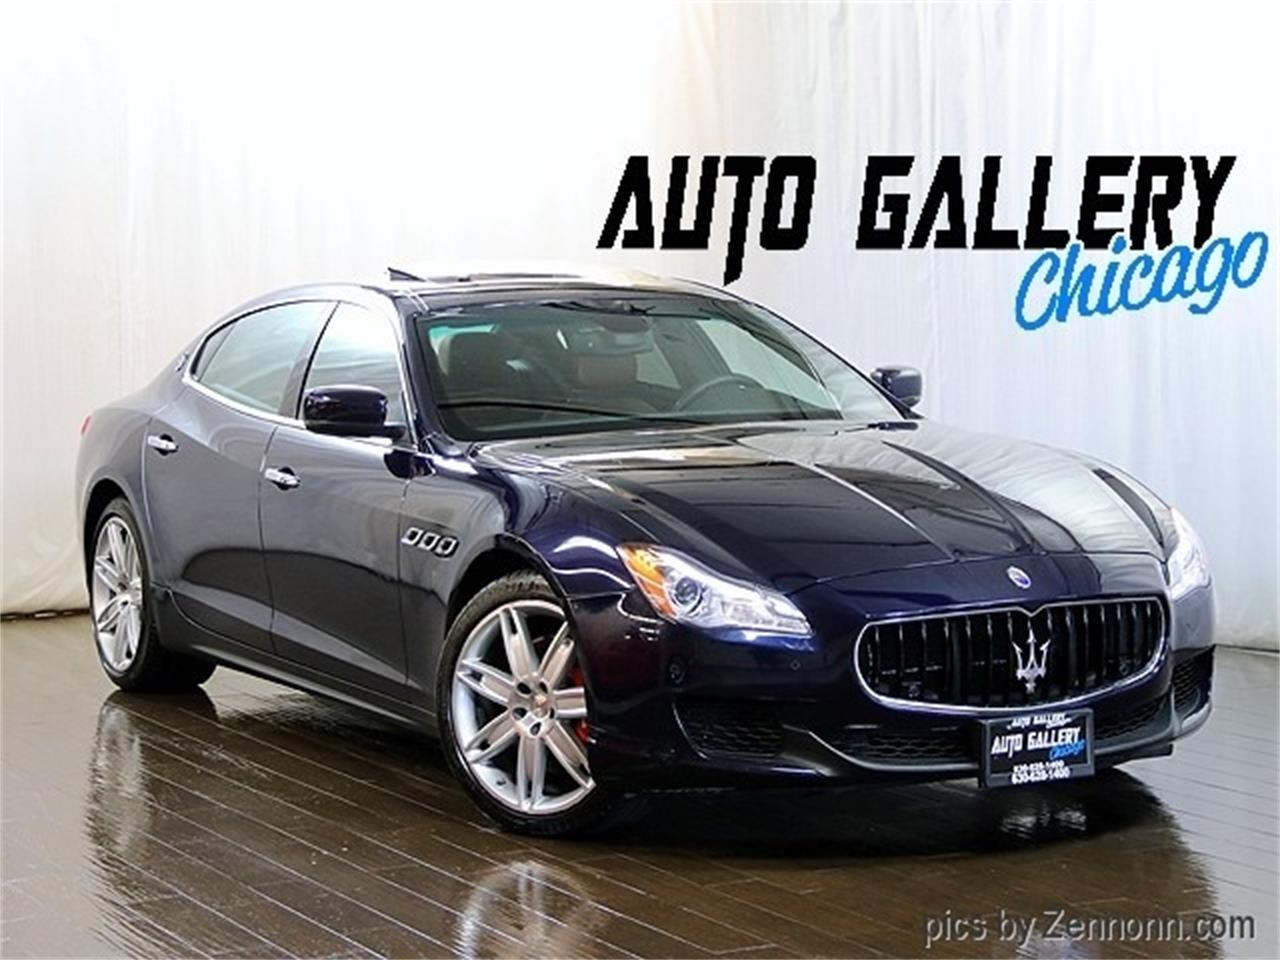 Large Picture of '16 Maserati Quattroporte located in Addison Illinois - $36,990.00 - R2Q9